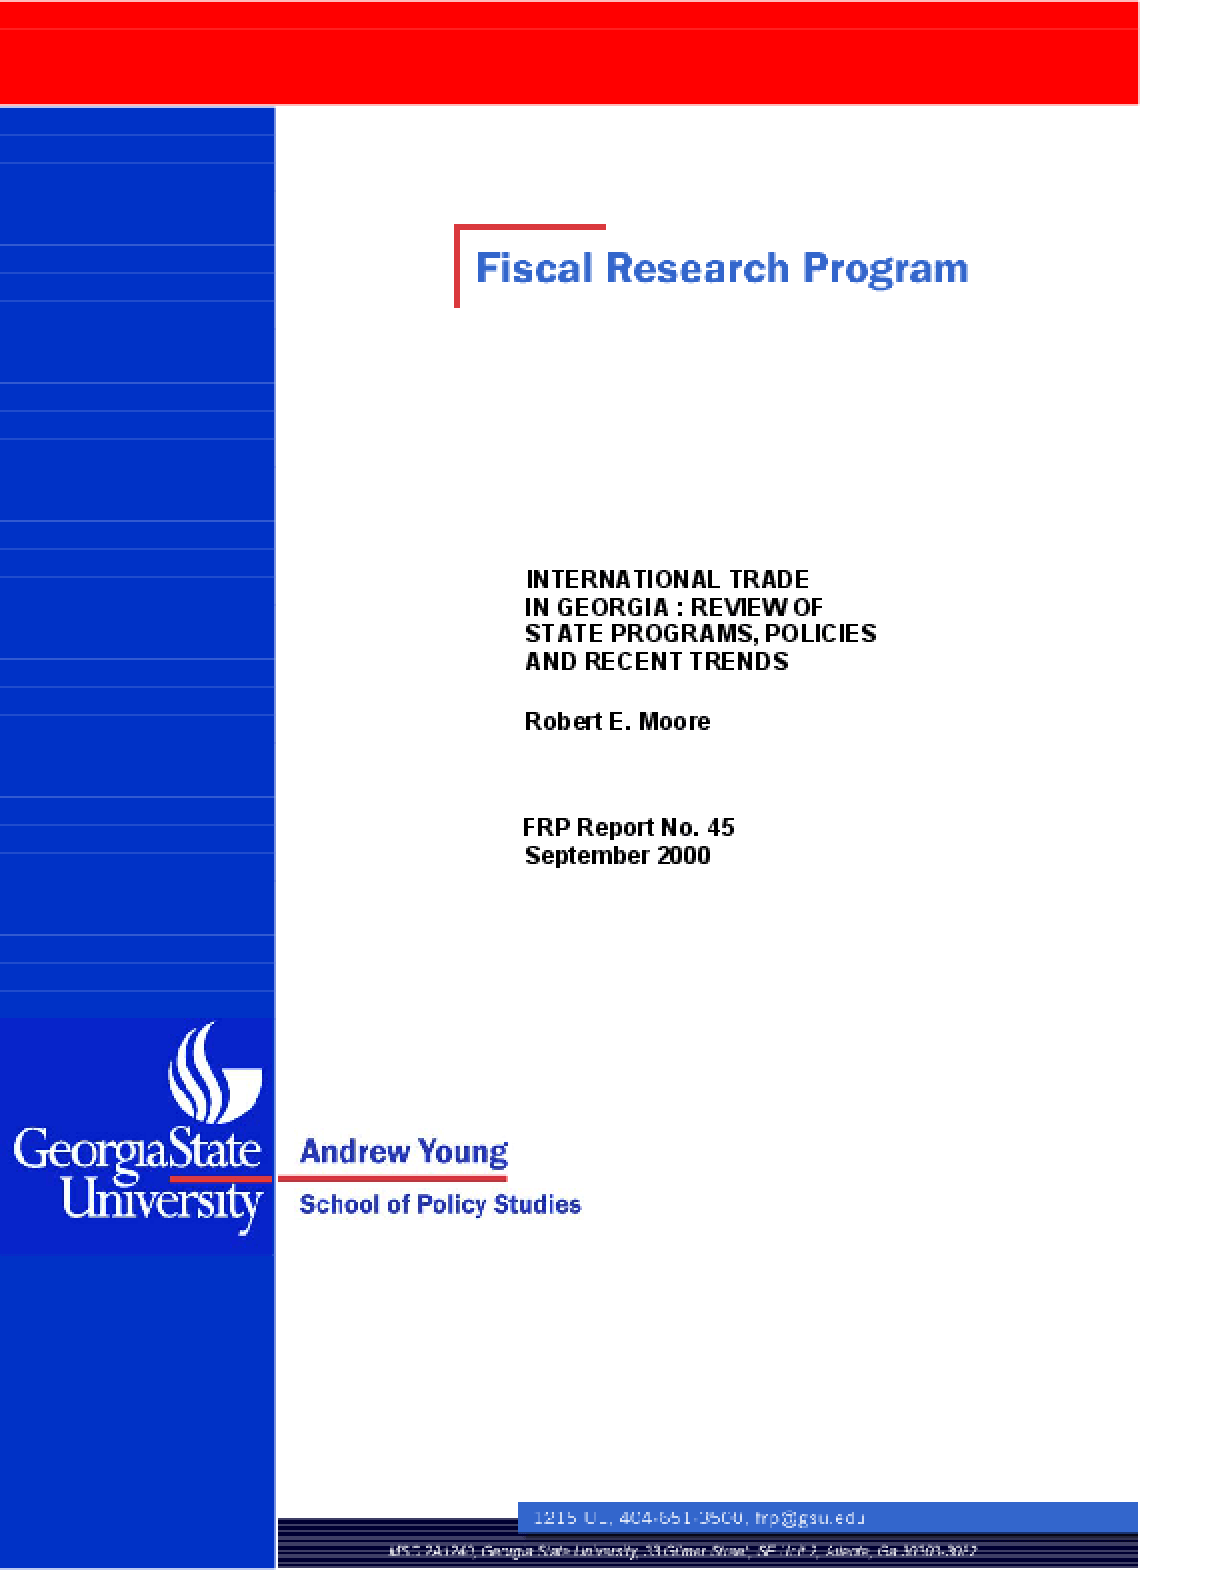 International Business and Foreign Investment in Georgia: The Impact of State Programs and Policies